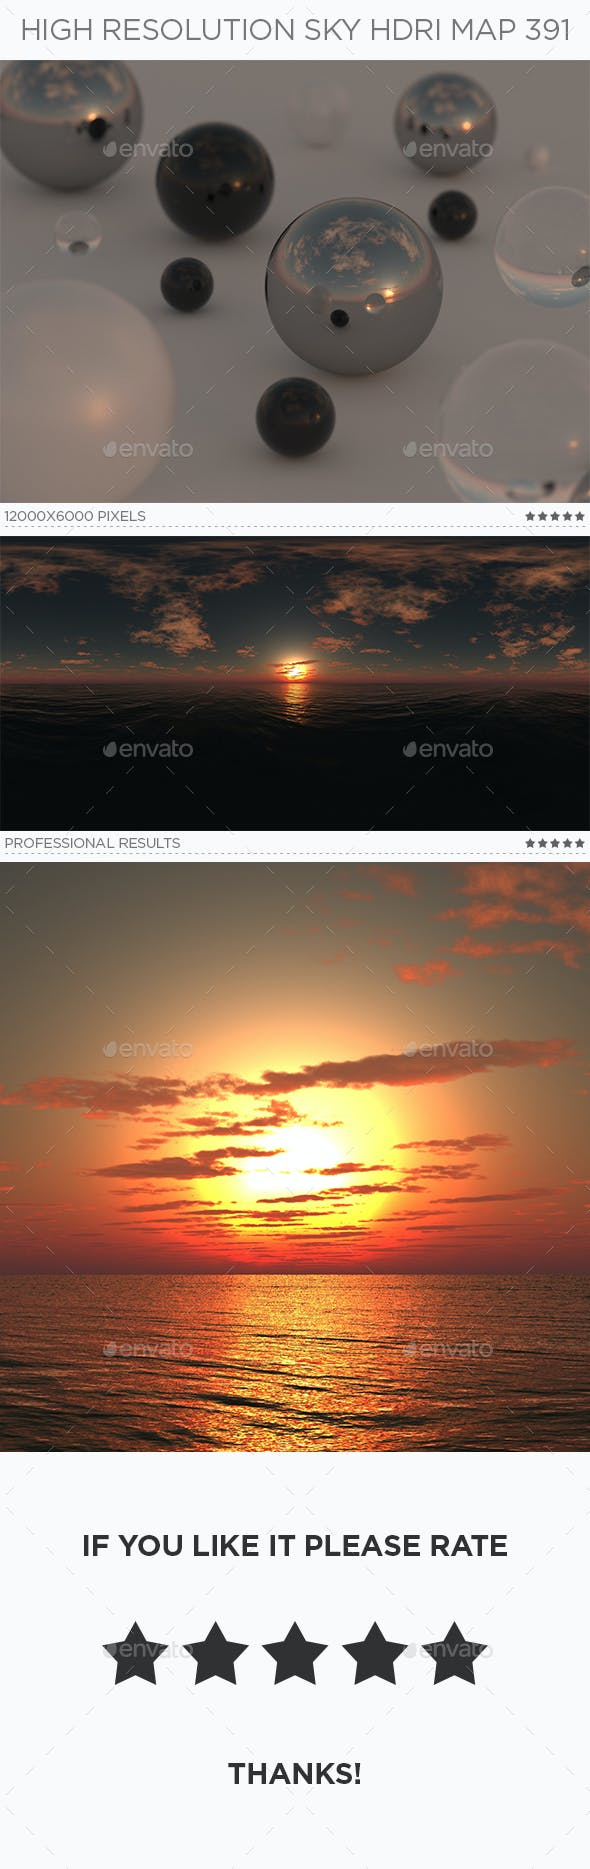 High Resolution Sky HDRi Map 391 - 3DOcean Item for Sale